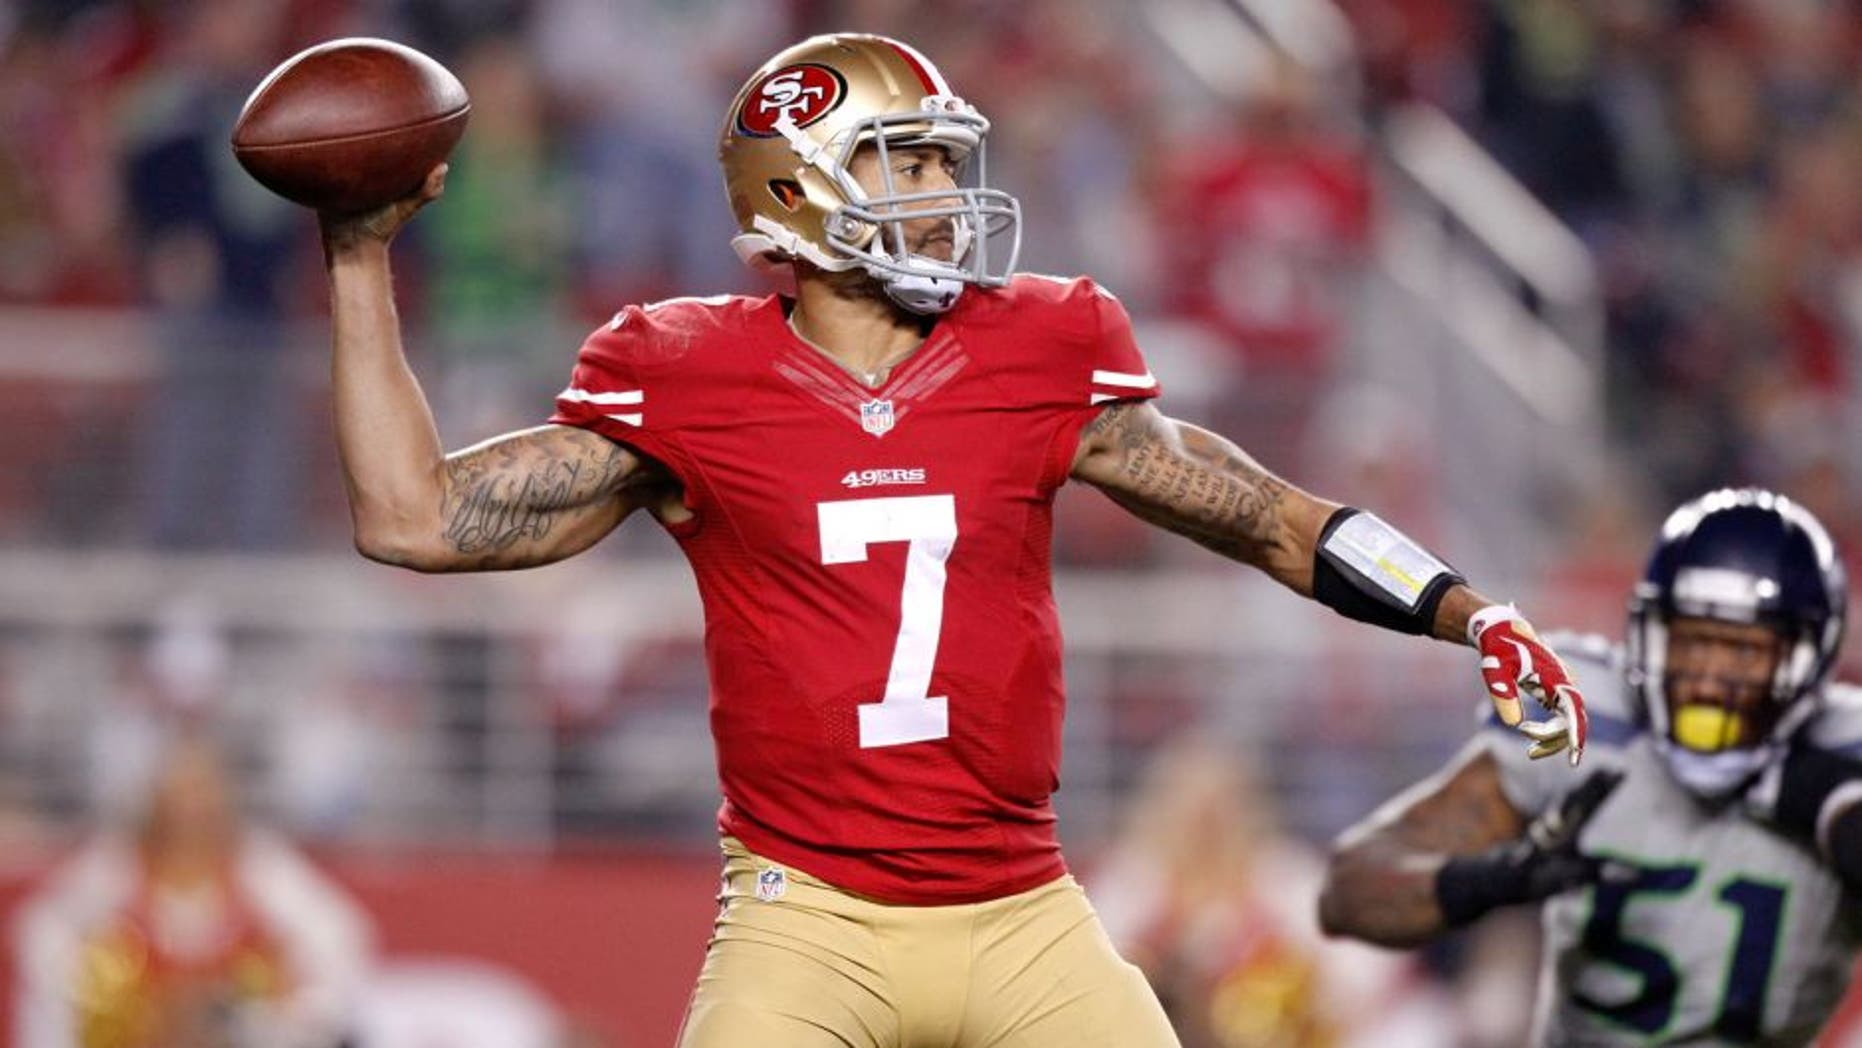 Nov 27, 2014; Santa Clara, CA, USA; San Francisco 49ers quarterback Colin Kaepernick (7) prepares to throw a pass against the Seattle Seahawks in the fourth quarter at Levi's Stadium. The Seahawks defeated the 49ers 19-3. Mandatory Credit: Cary Edmondson-USA TODAY Sports